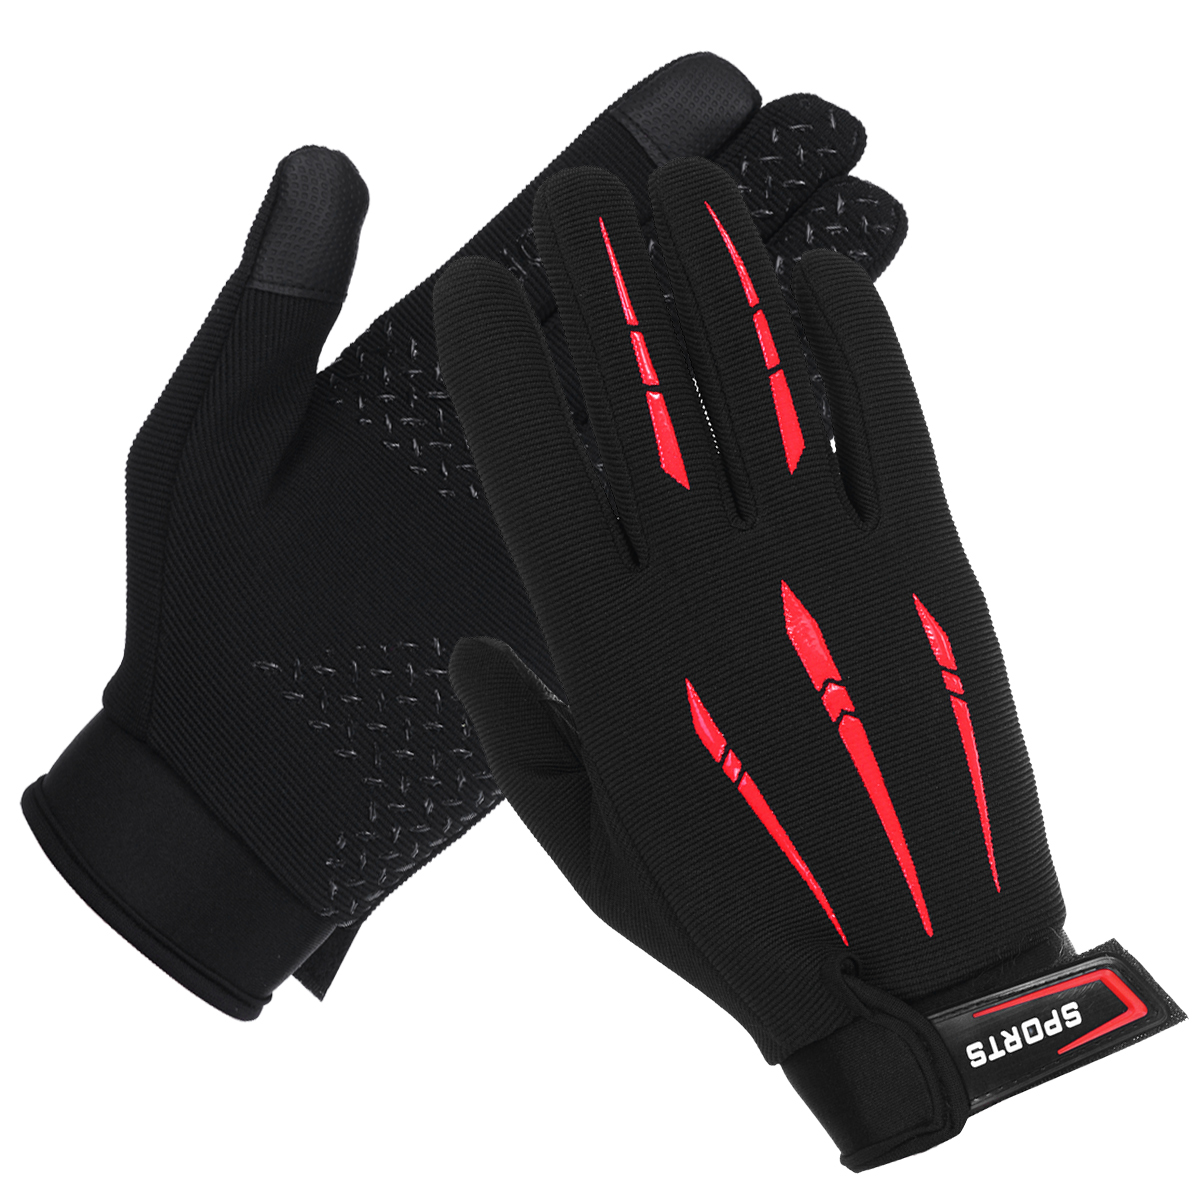 Windproof Men Women Touch Screen Gloves Non-Slip Waterproof Winter Warm Cycling Motorcycle Riding Thermal